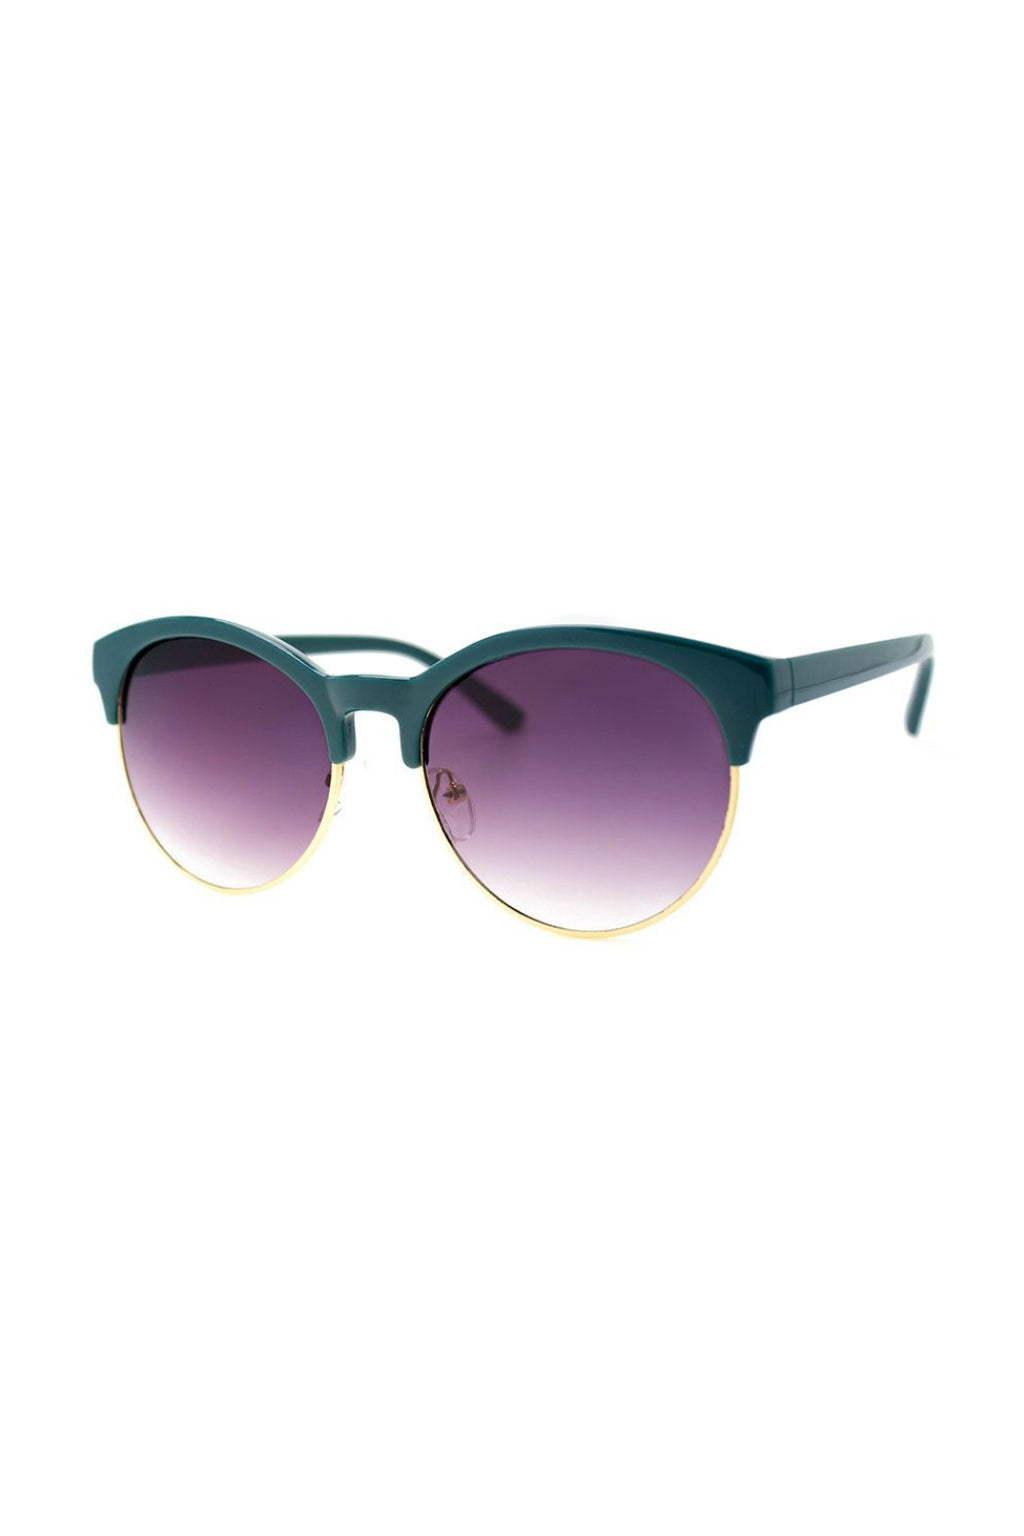 Deborah Sunnies - Teal